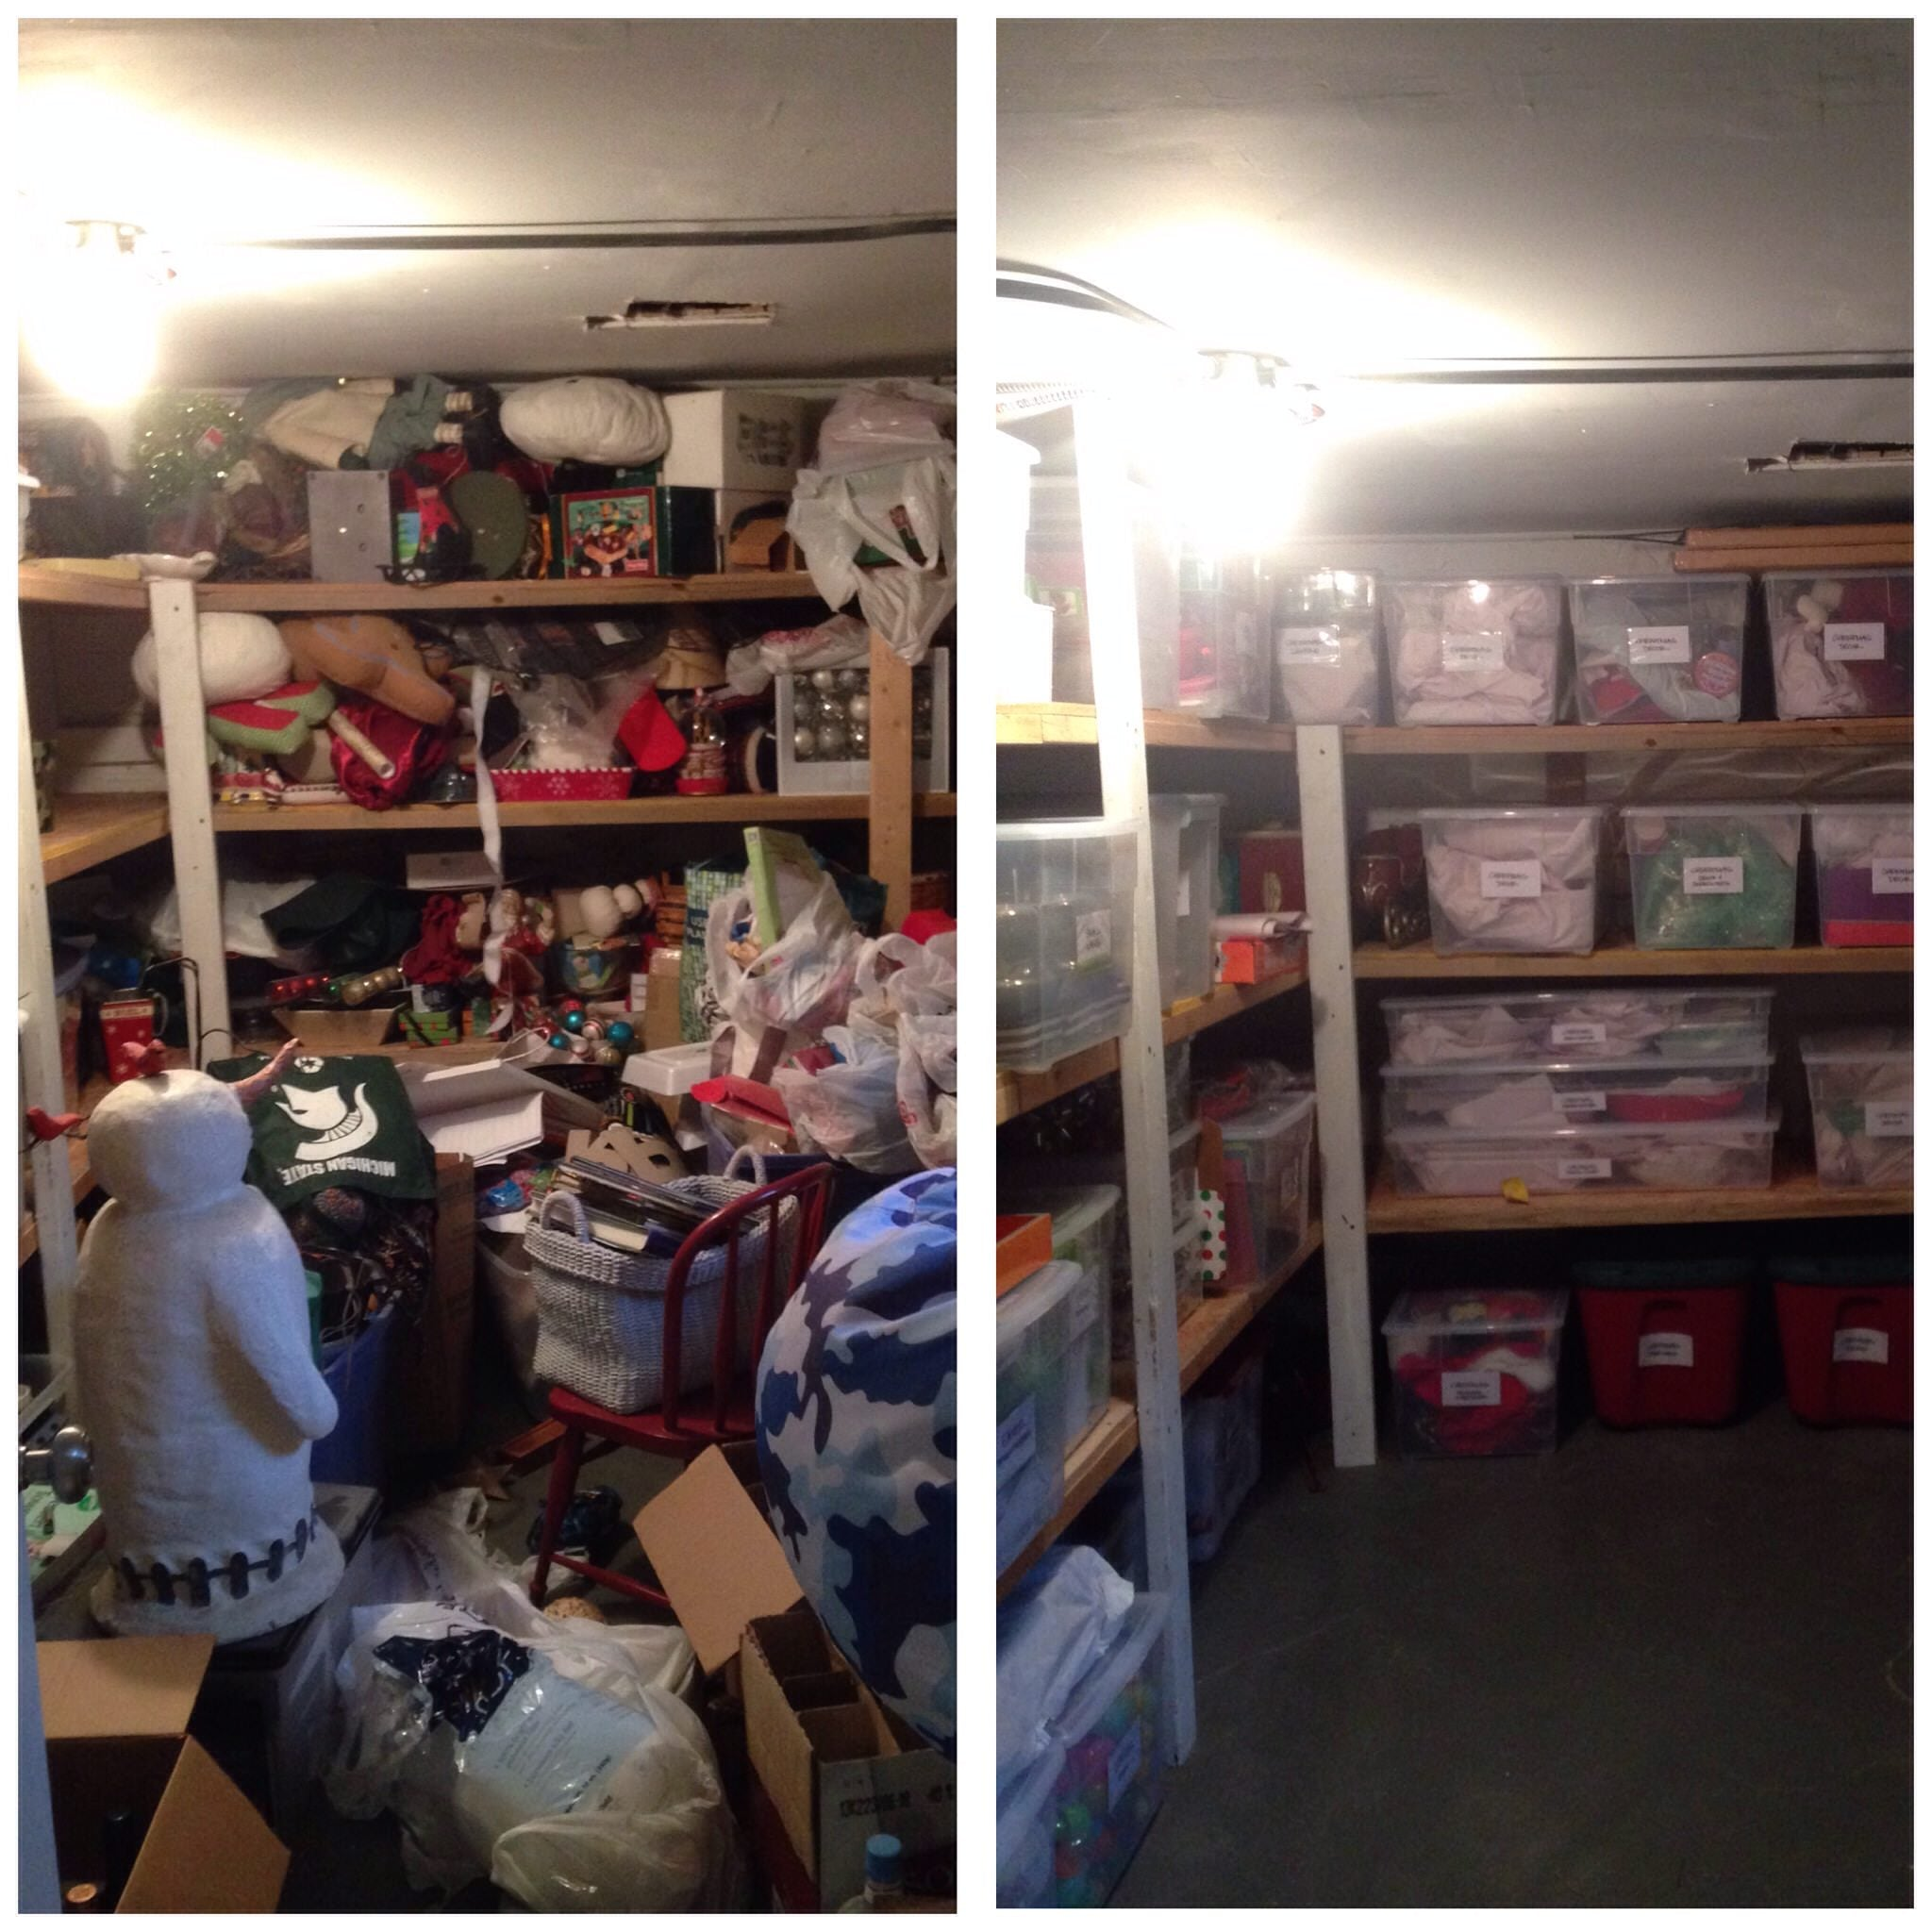 Brooke Ruder, Ashley Murphy, plastic bins, storage unit, before and after, organized space, organized home, home organizer, professional organizer,